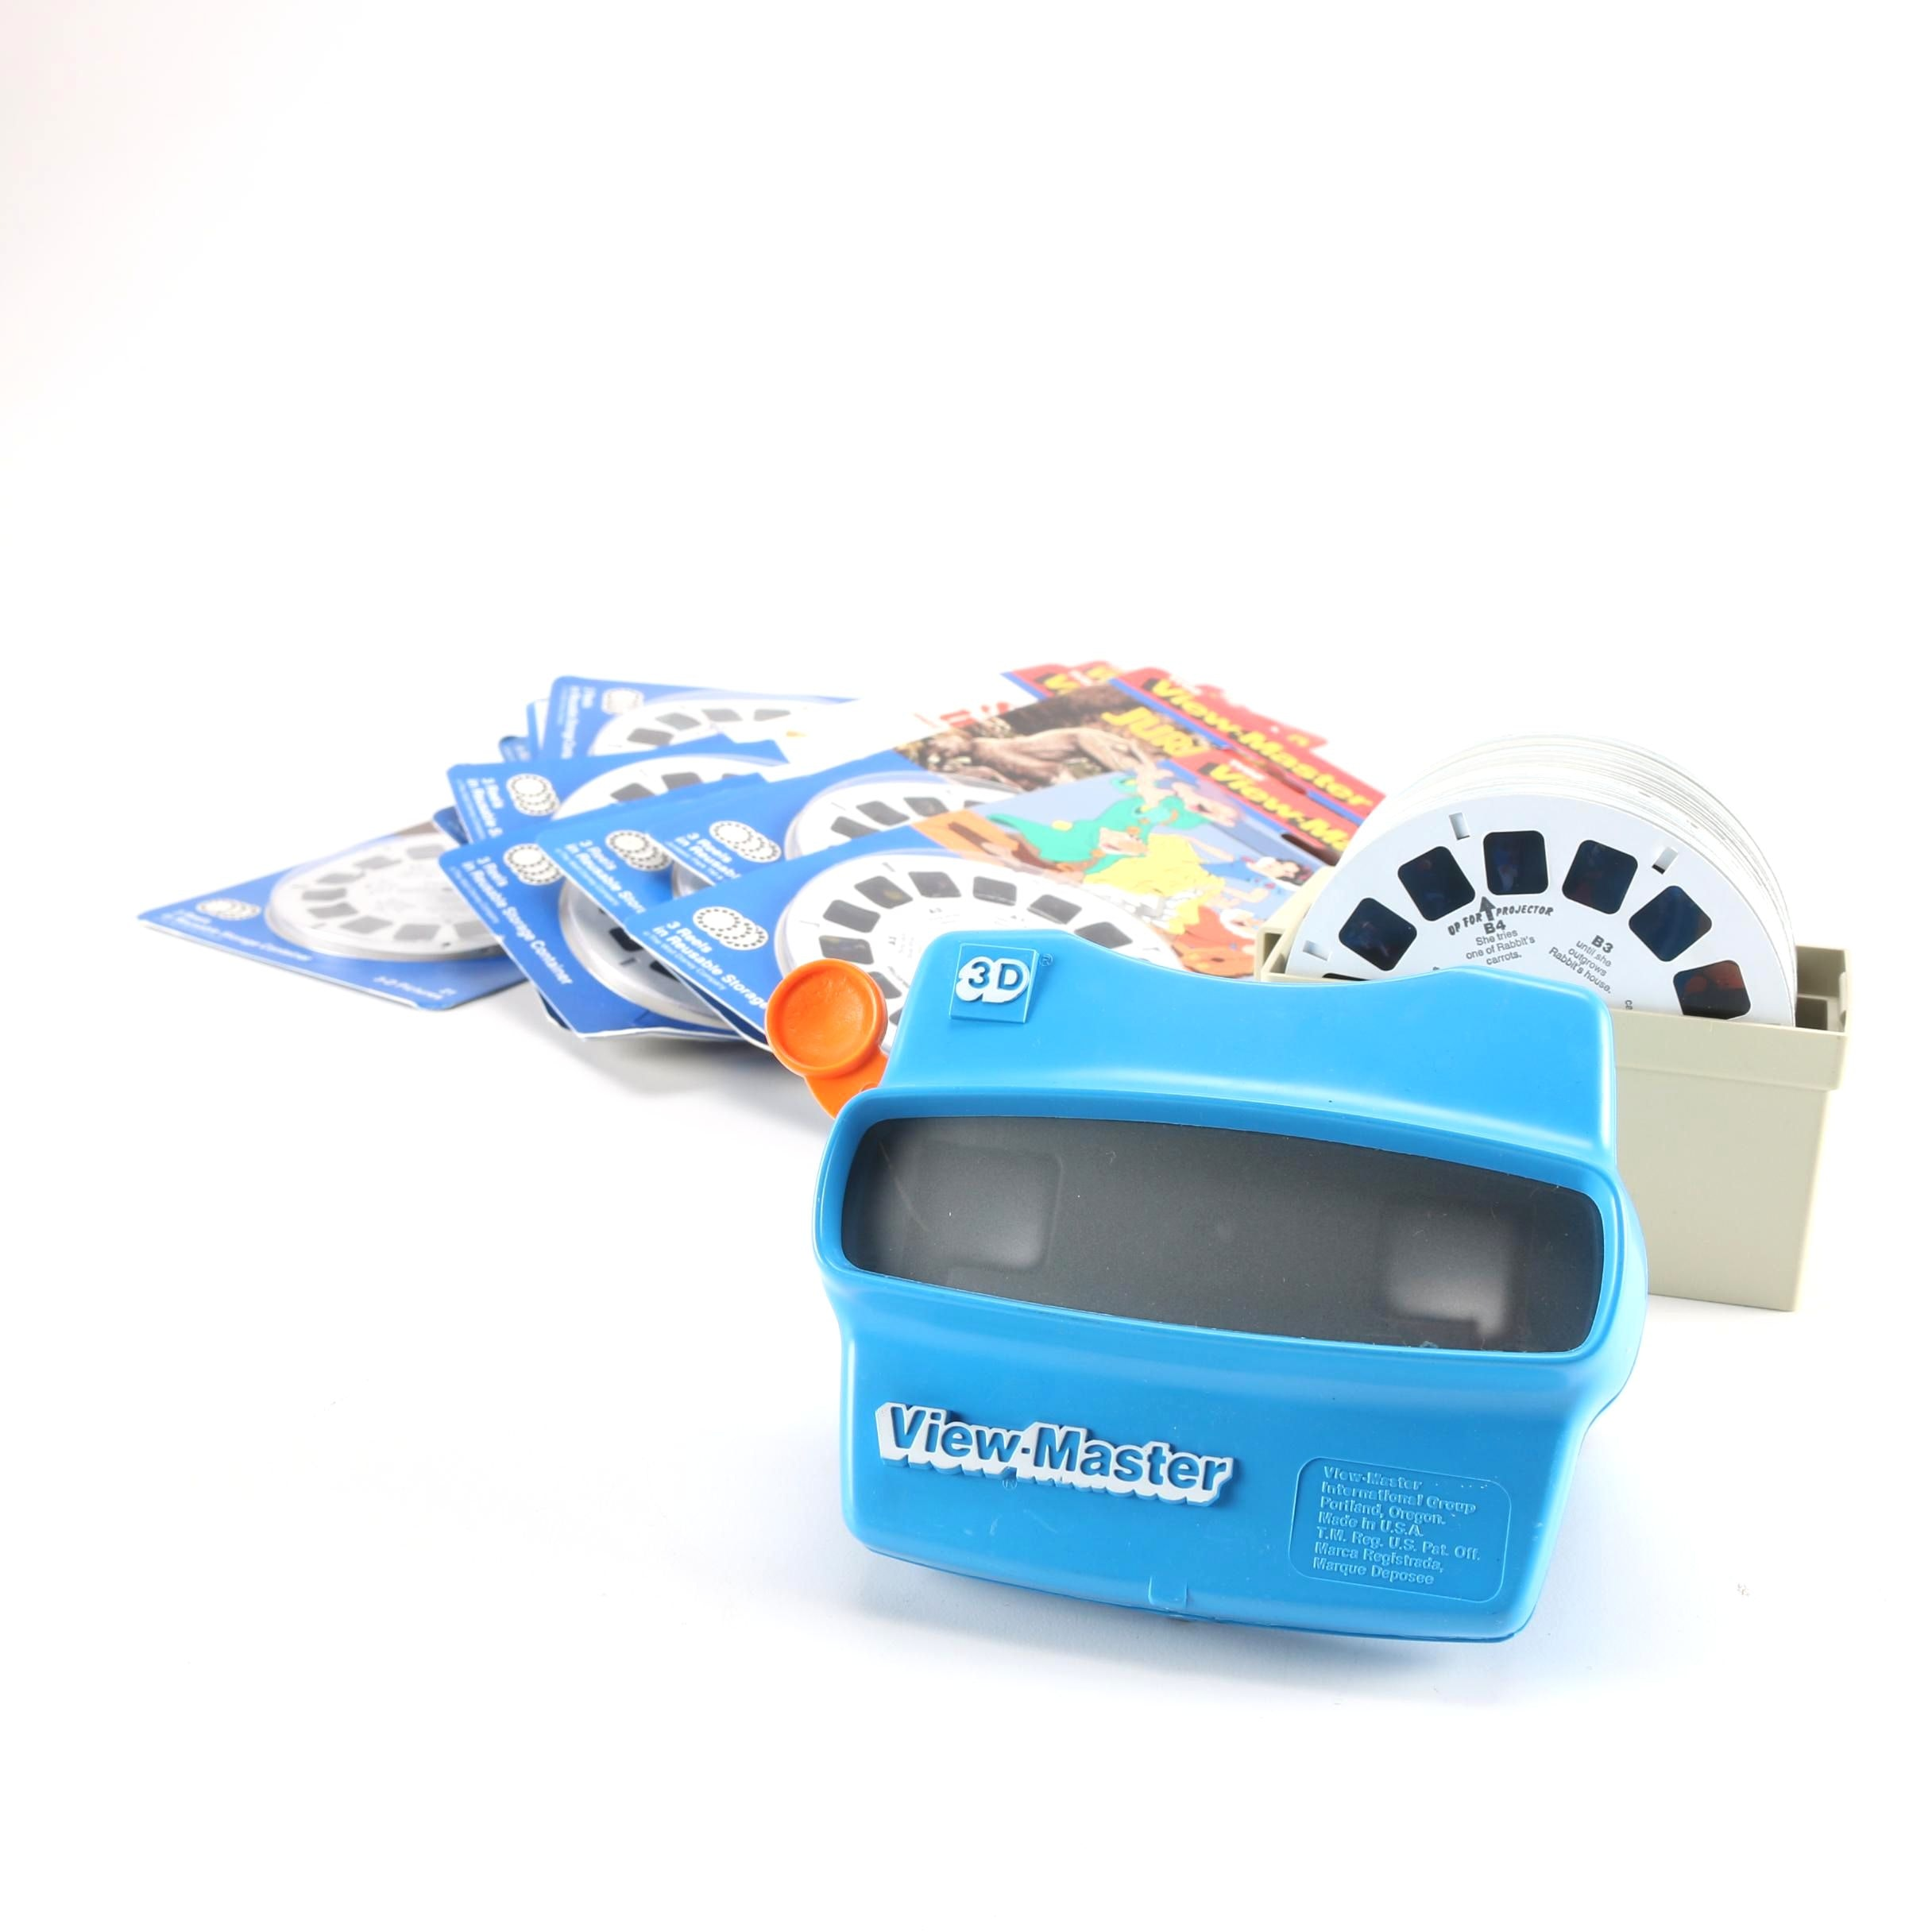 View-Master with Slides